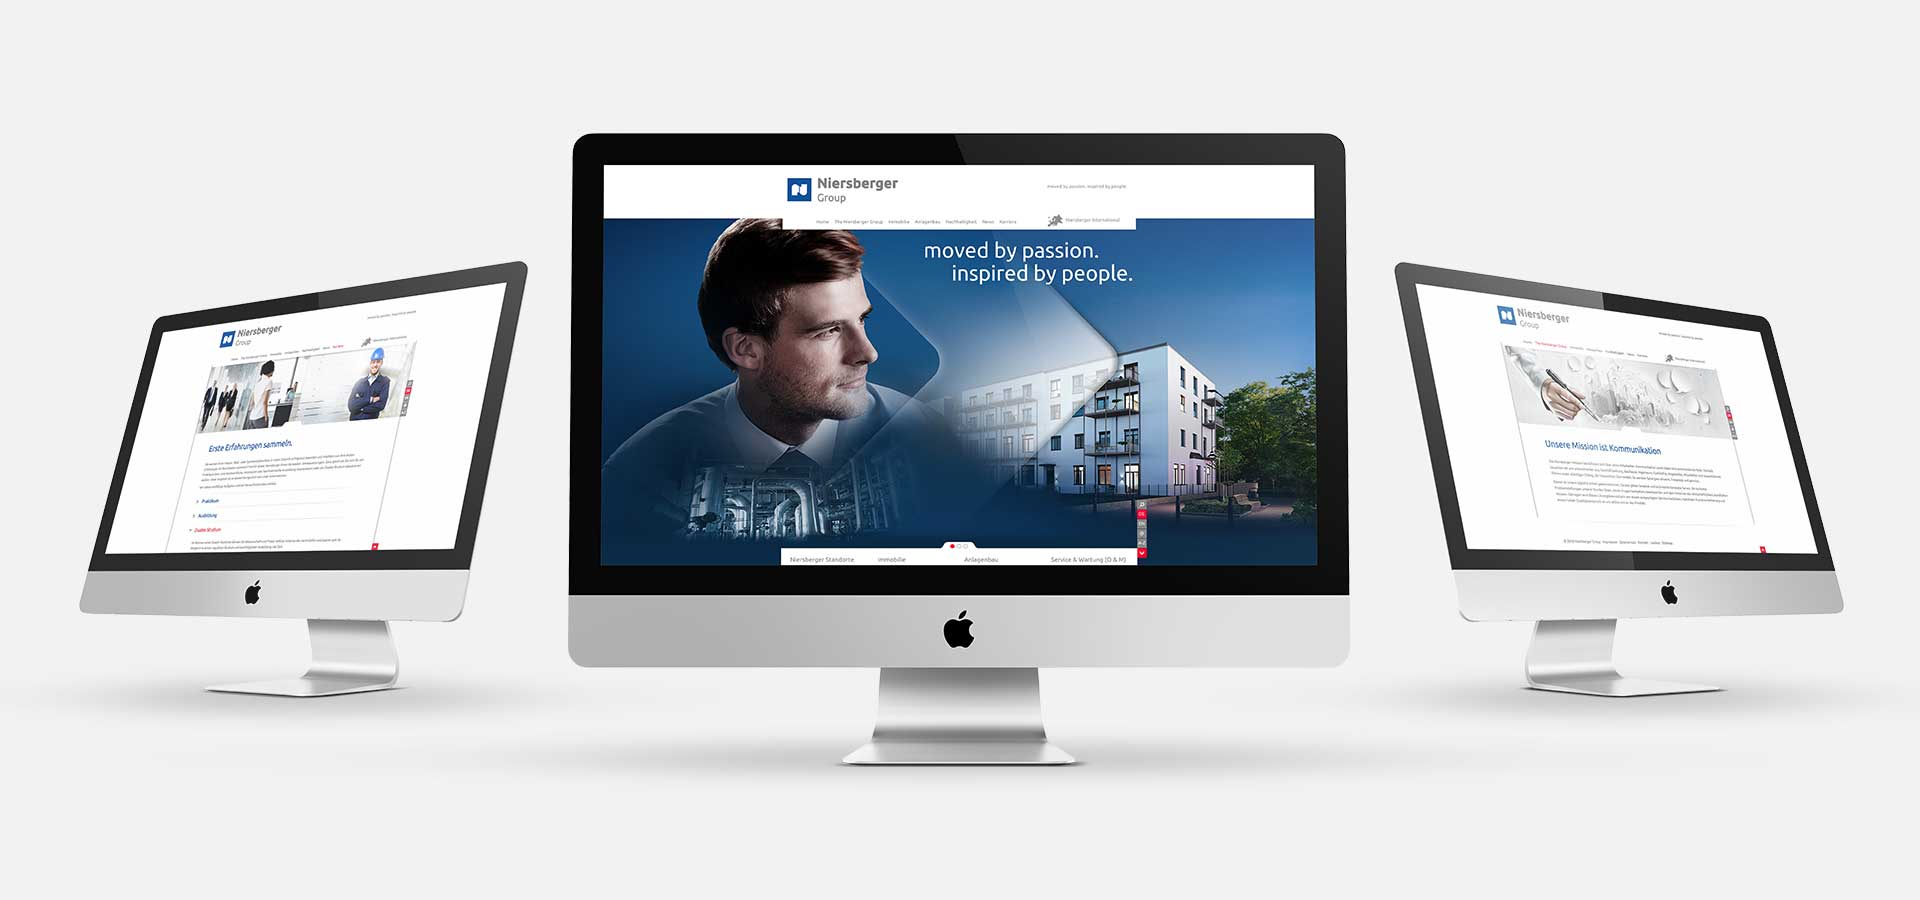 OPUS Marketing / Projekte / Niersberger Group / Responsive Website